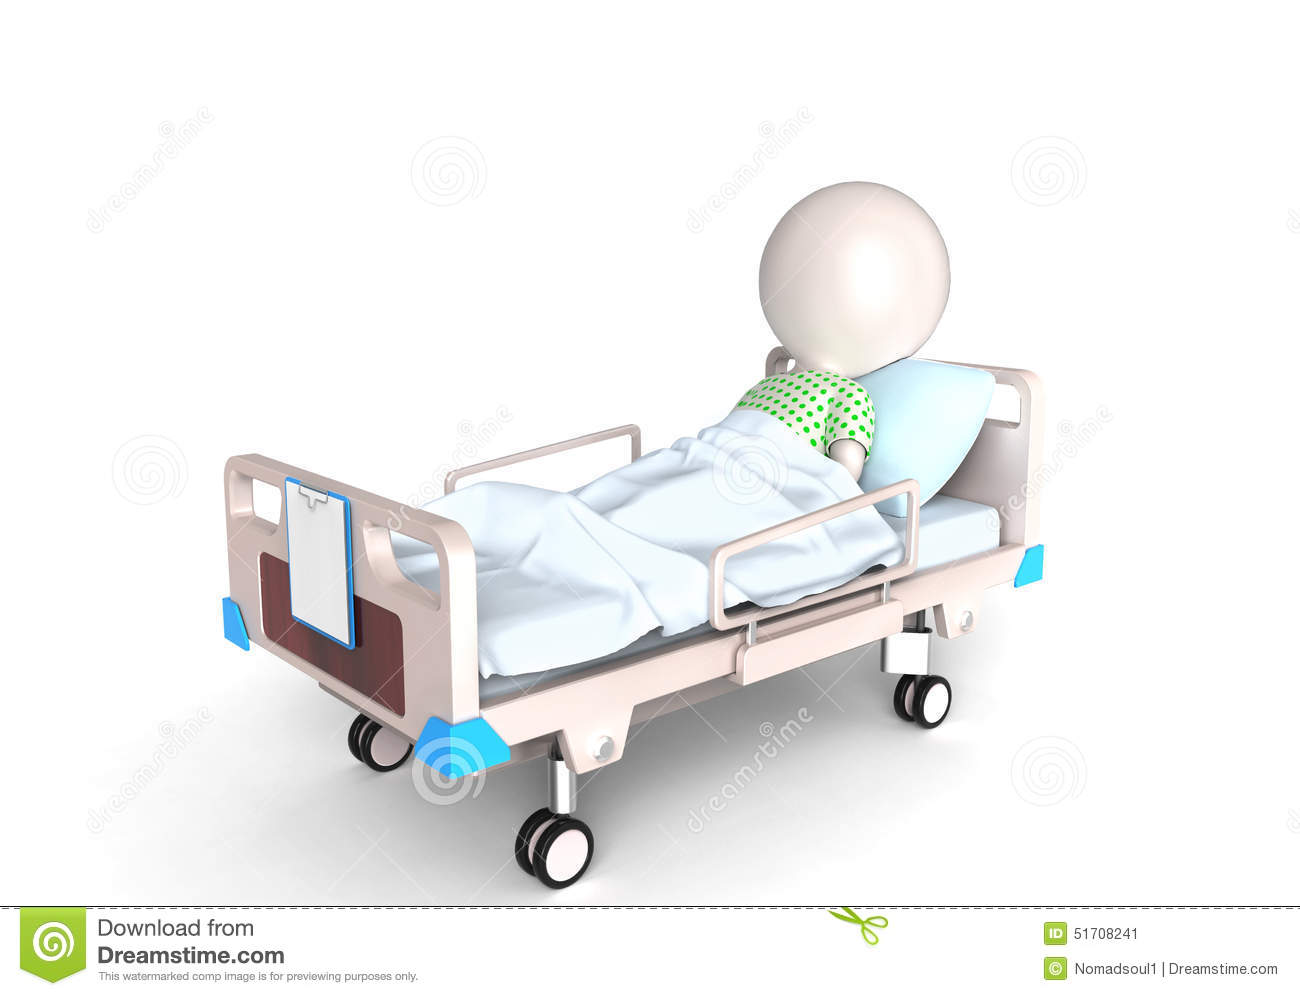 3D little person as a patient in hospital bed.